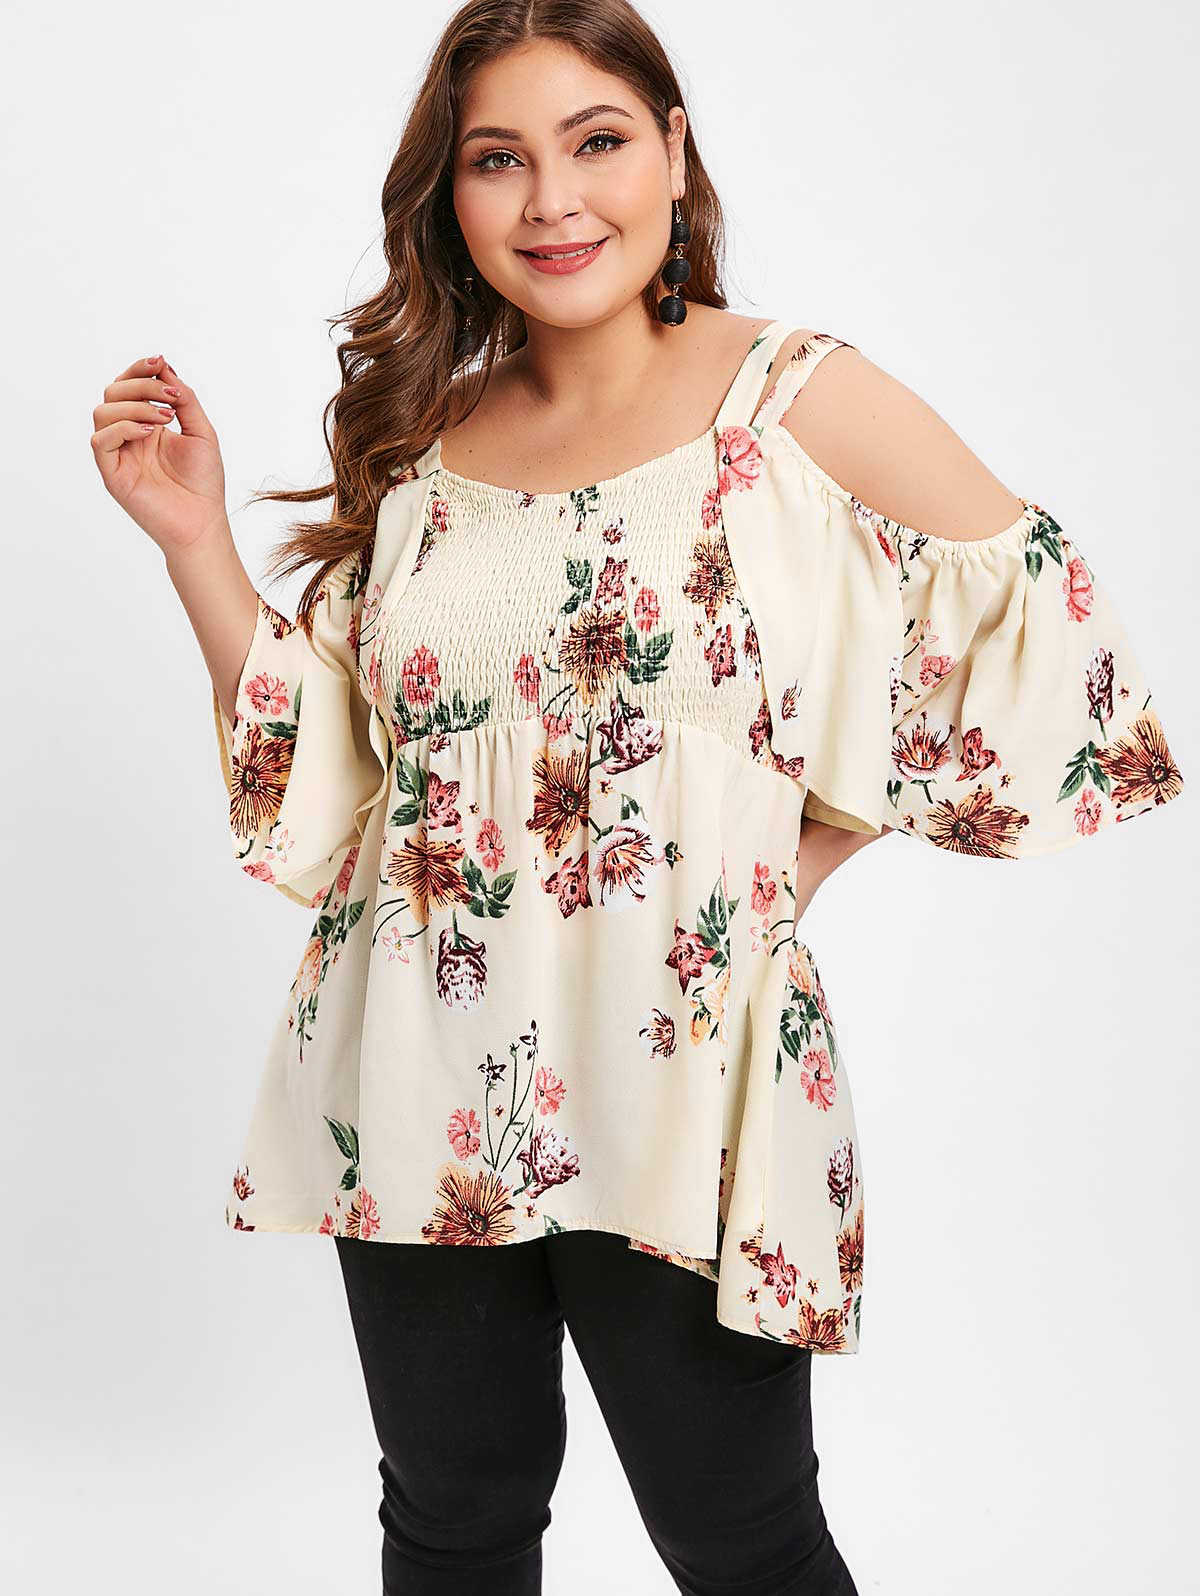 Wipalo Plus Size 5XL Floral Print Cold Shoulder Smocked Blouse 3/4 Length Sleeve High Low Hem Casual Blouse Spring Summer Blusas